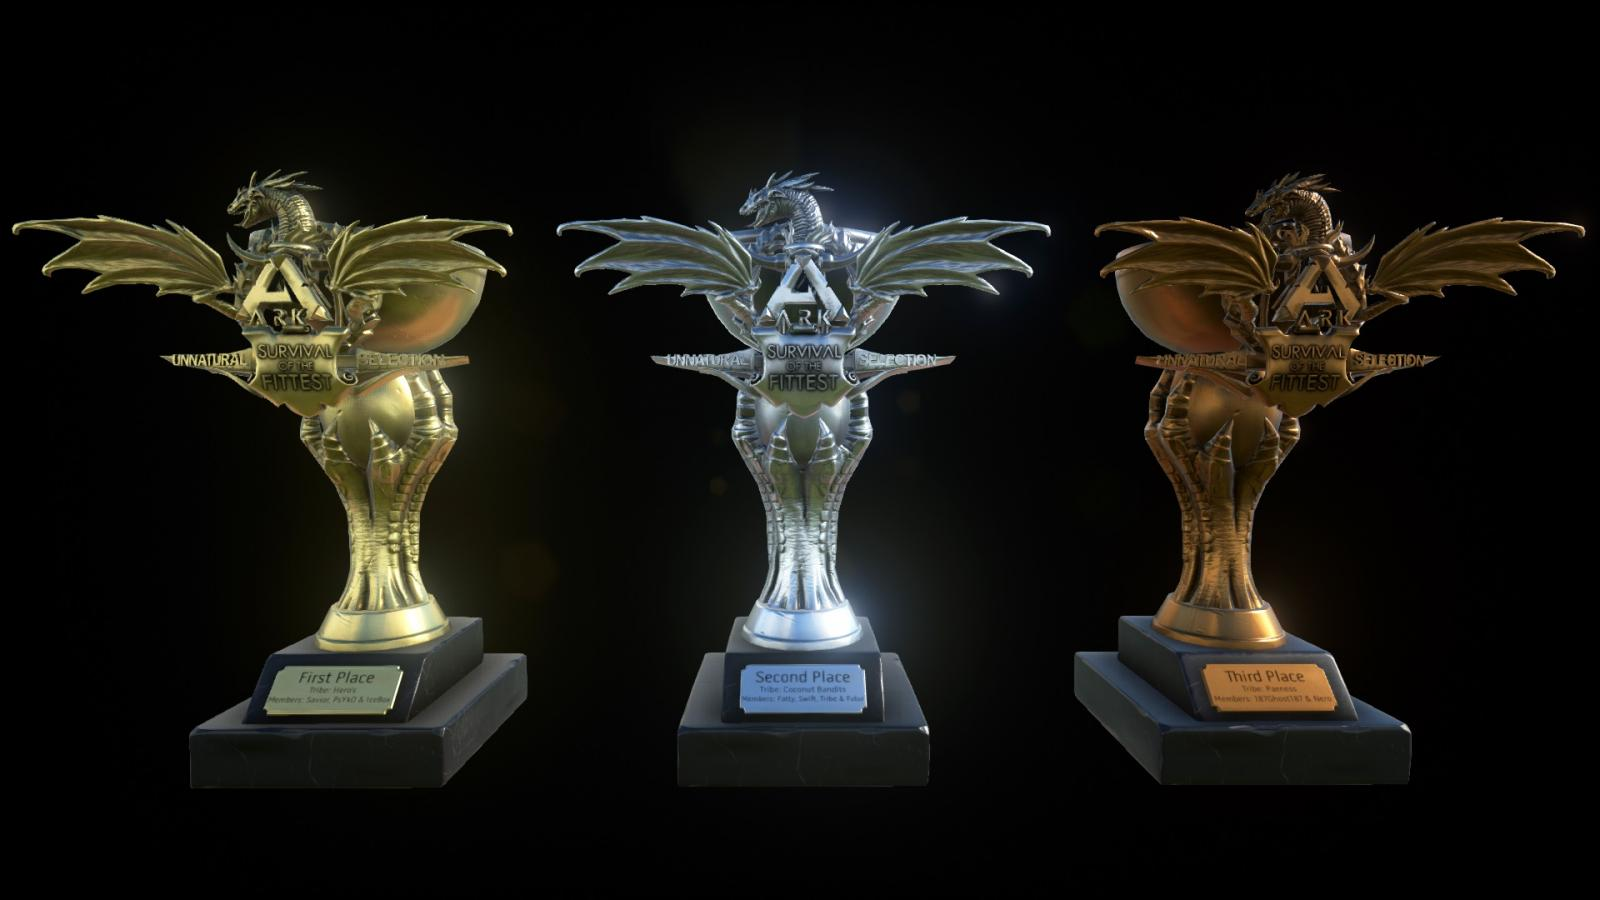 Survival of the Fittest: Unnatural Selection Trophy